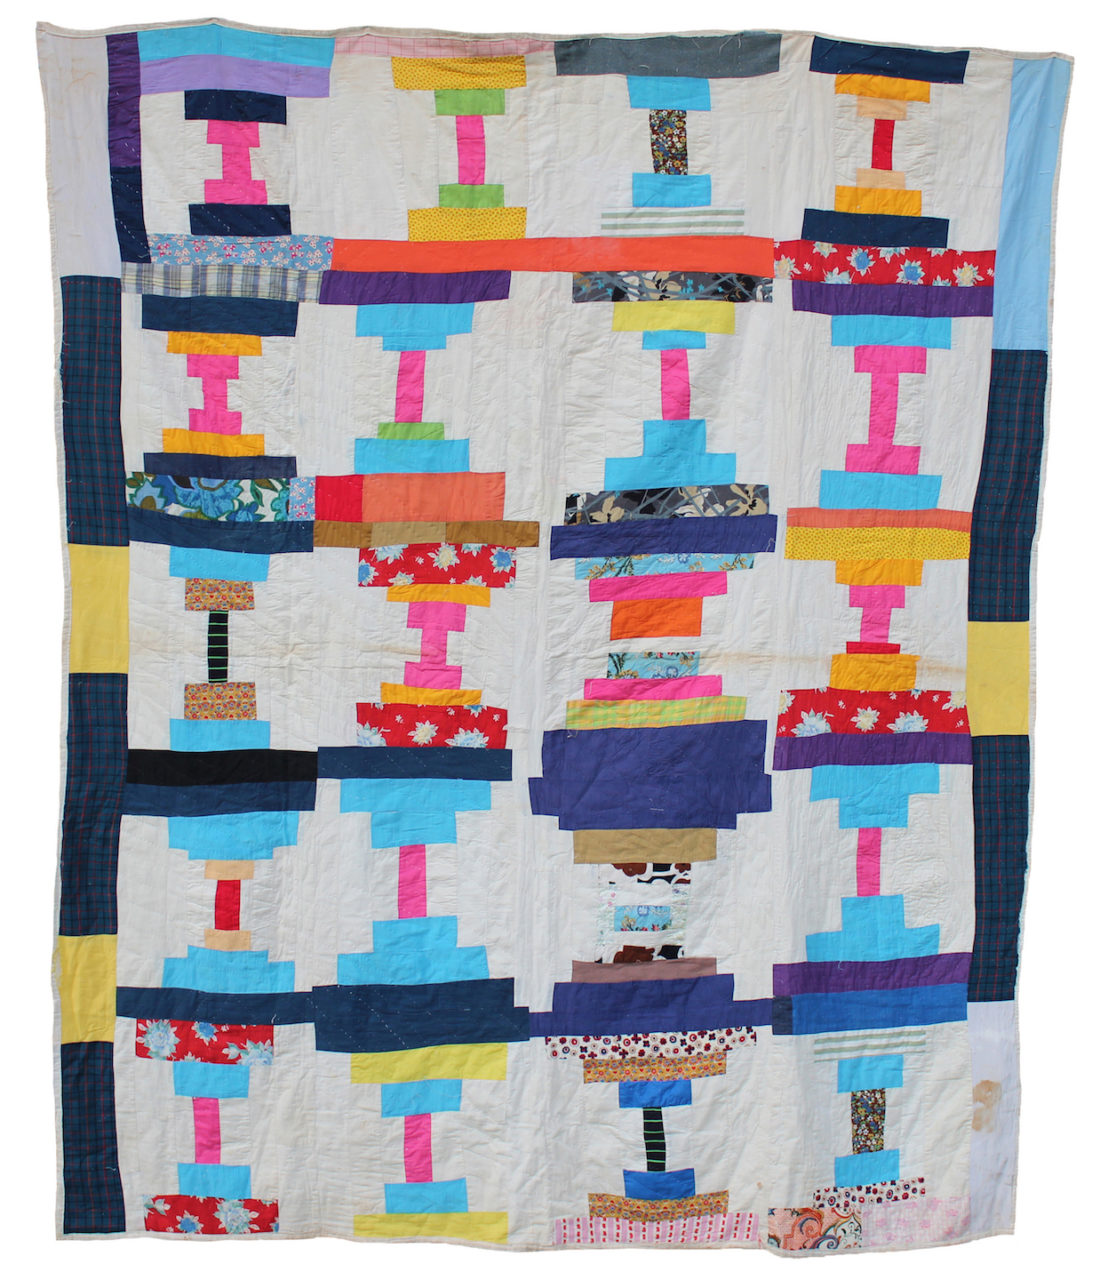 Gee's Bend Quiltmakers | Aolar Carson Mosely